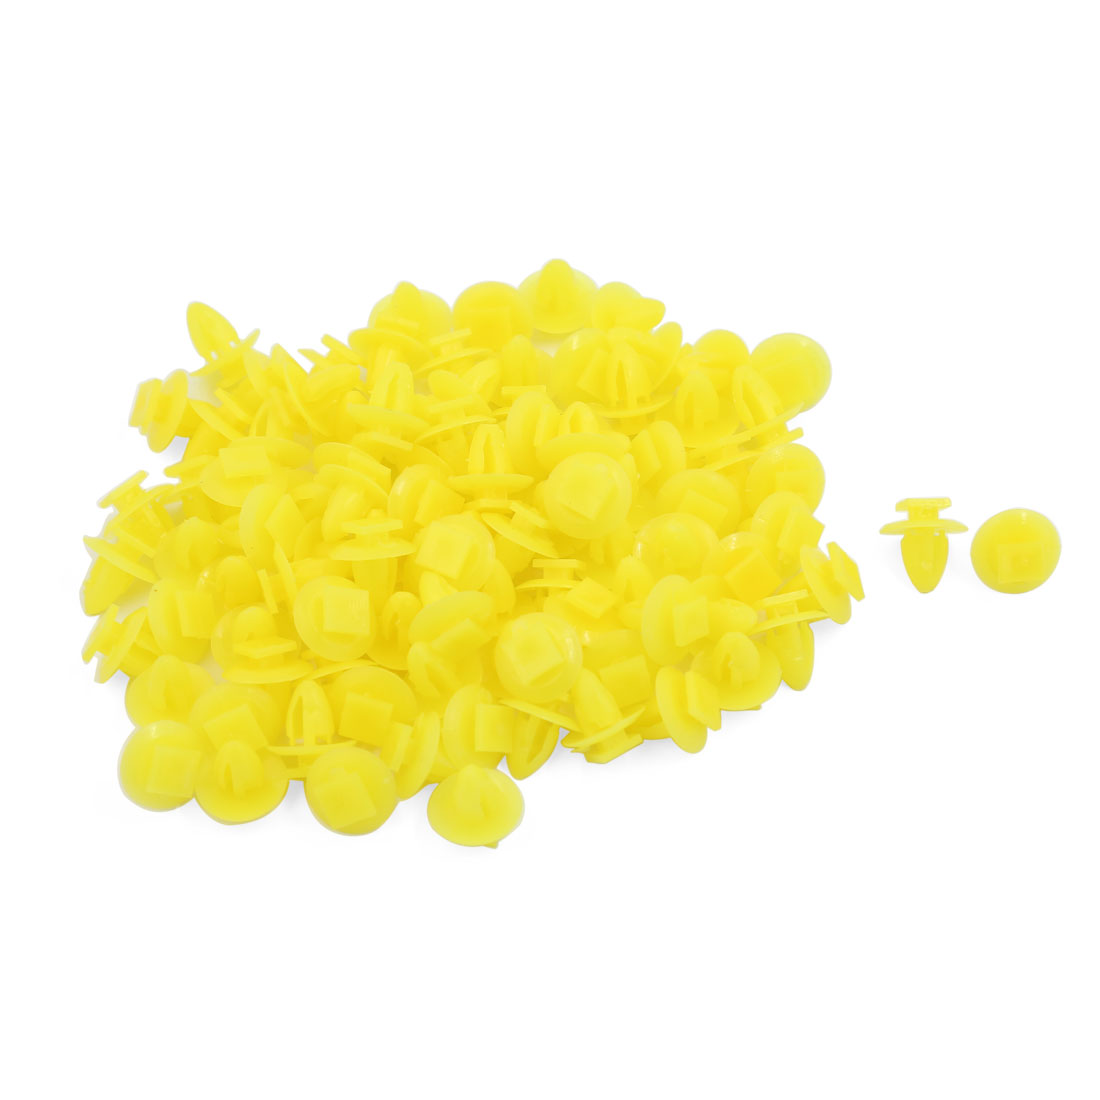 100 Pcs Yellow Plastic Rivet Trim Fastener Moulding Clips 5mm x 11mm x 13mm